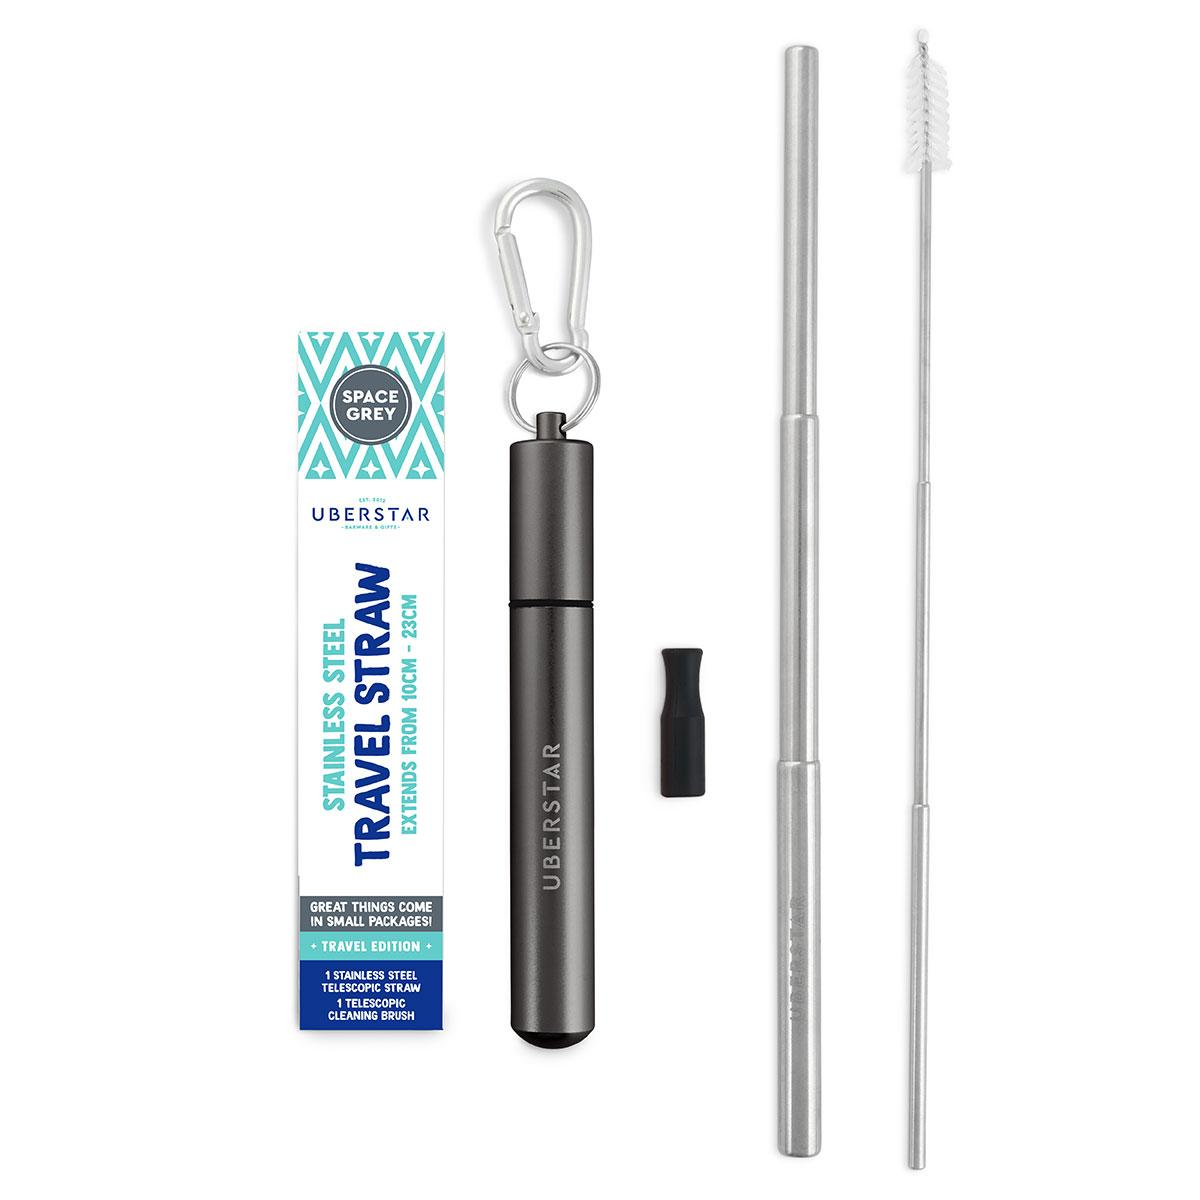 Space grey Stainless steel travel straw - Wild Atlantic Living